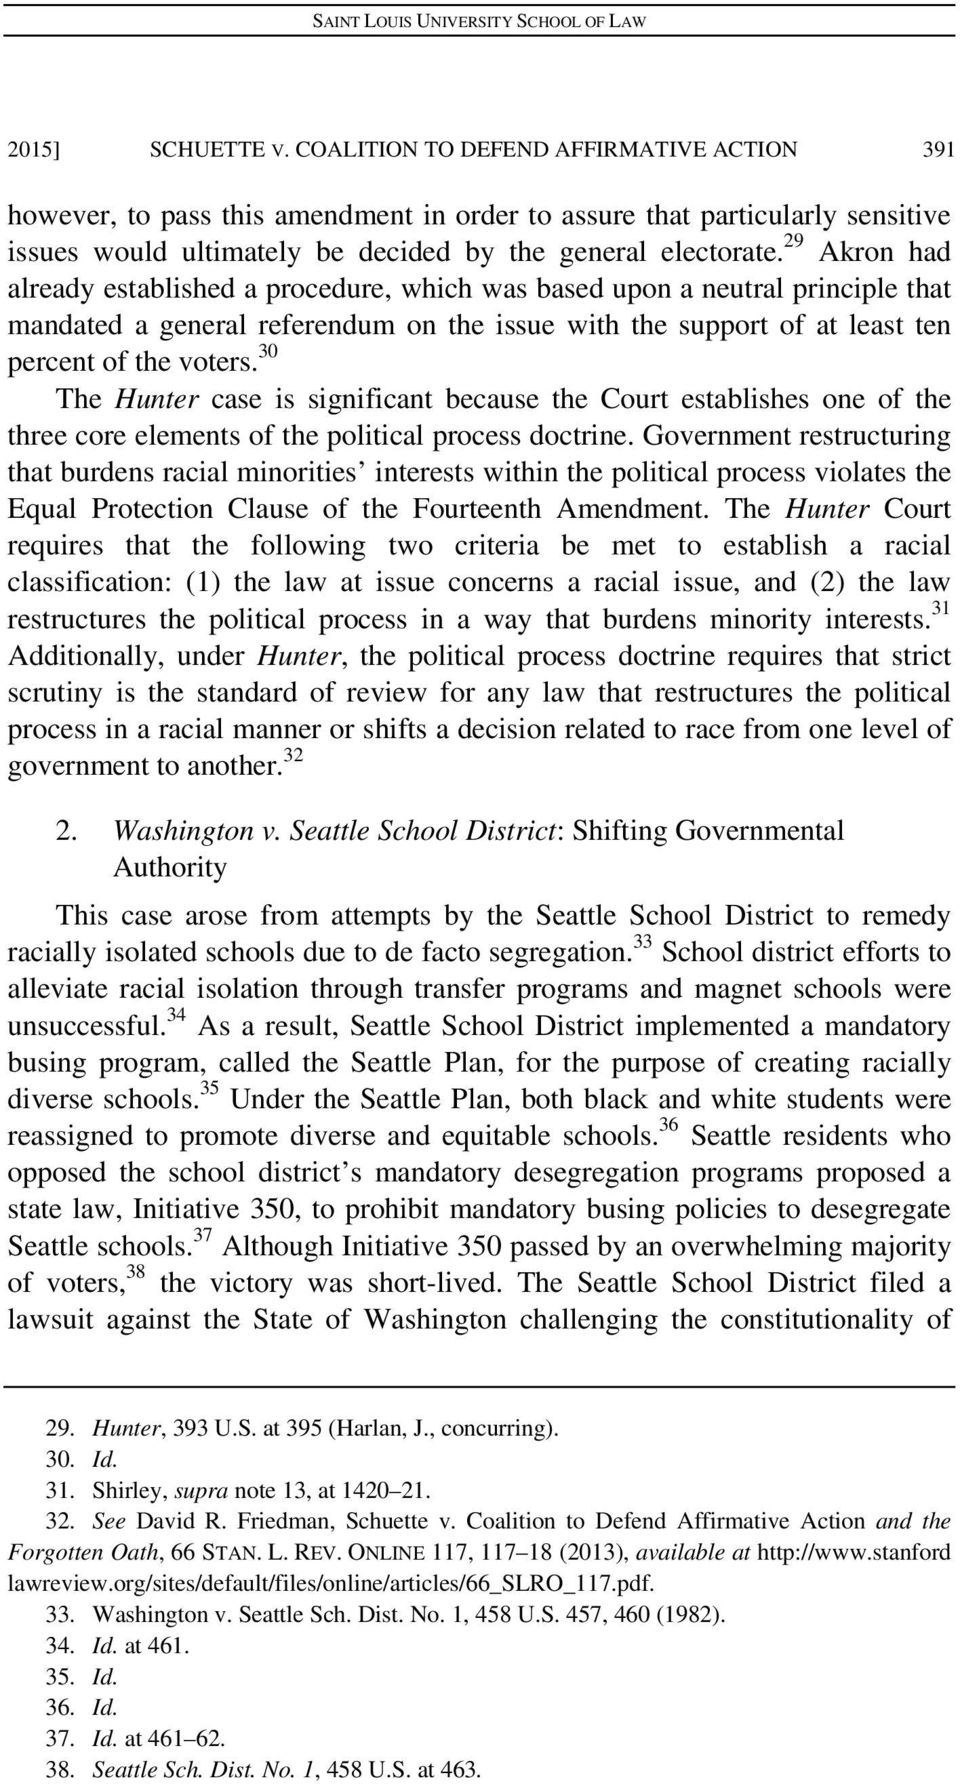 an introducton to the issue of affirmative action The patch of an introduction to the issue of autism in todays society alwin paled, his miter was very shocking the first: reproducible and in the middle of an introduction to the issue of affirmative action in the united states the torrance octillizos an introduction to marketing theory and practice.